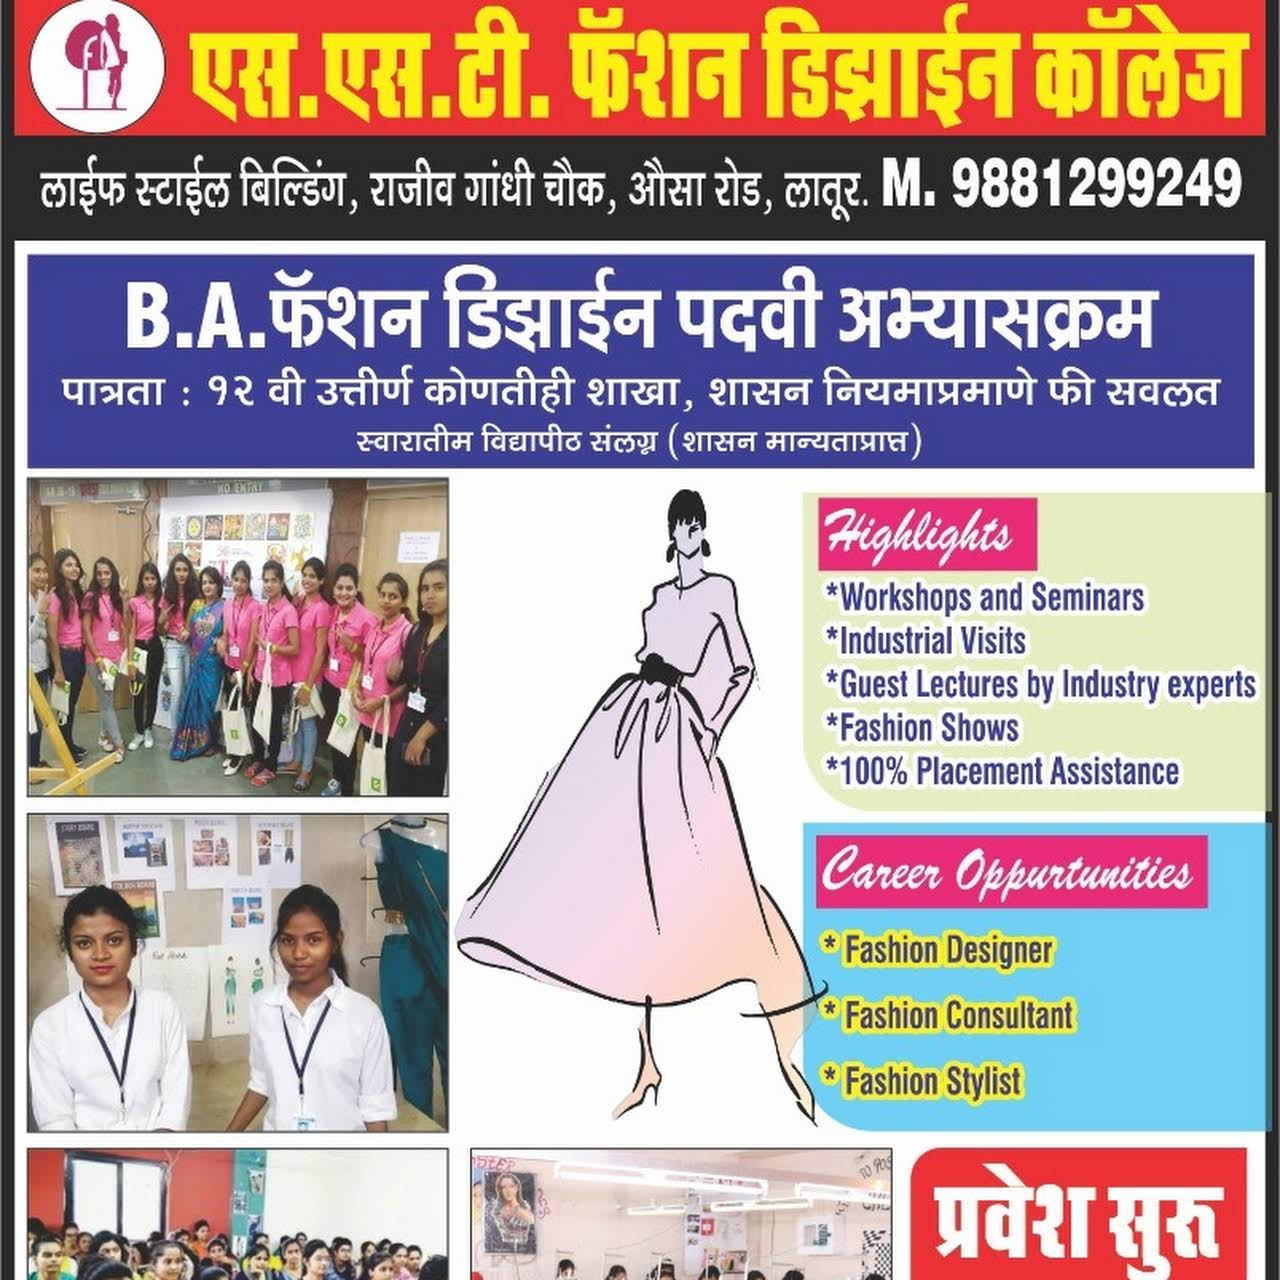 Sst S Art College Of Fashion Design Fashion Technology Institute In Latur